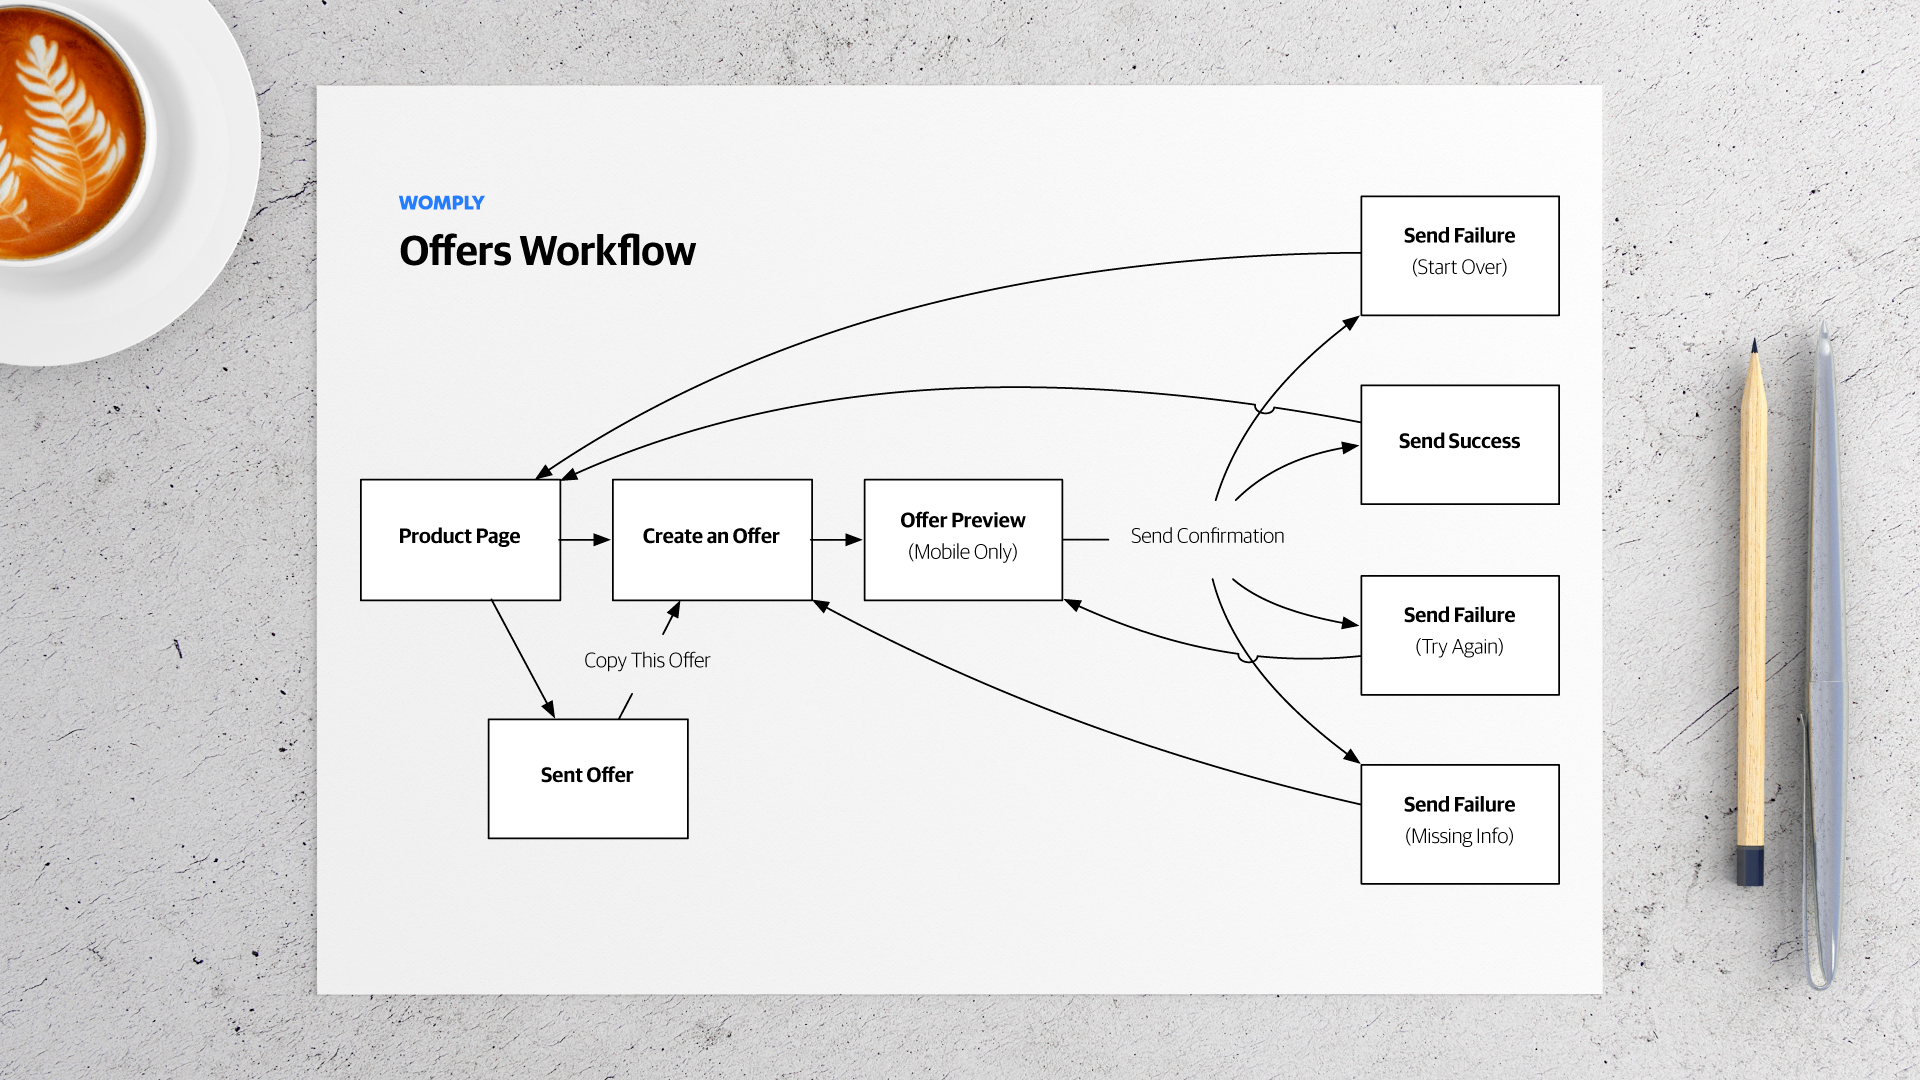 Diagram Detailing the User Workflow for the Initial Launch of Offers